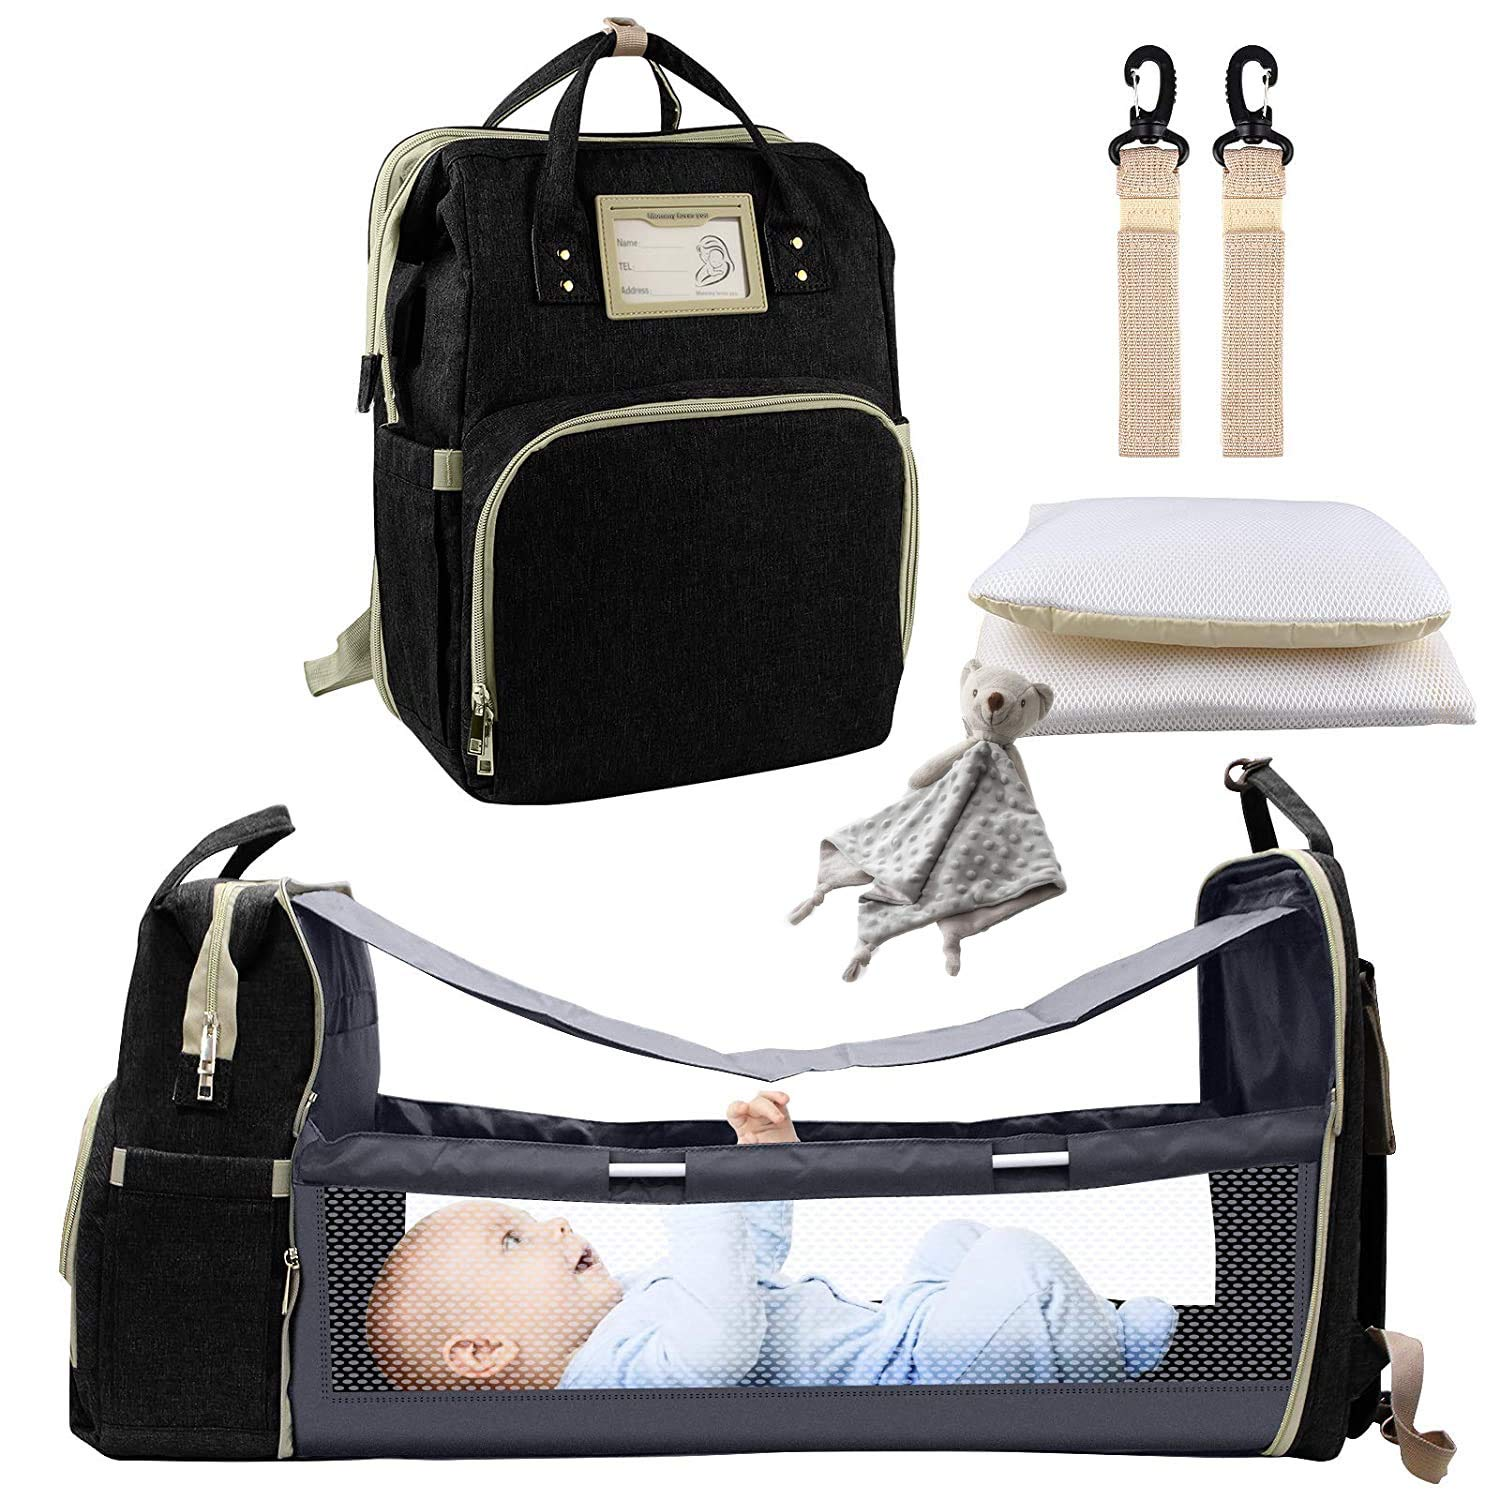 7 in 1 Diaper Bag Backpack Including a Premium Baby Blanket - Diaper Bag with Changing Station - Baby Crib with Infant Travel Pad - Expanding Diaper Bag- Exclusive Prime